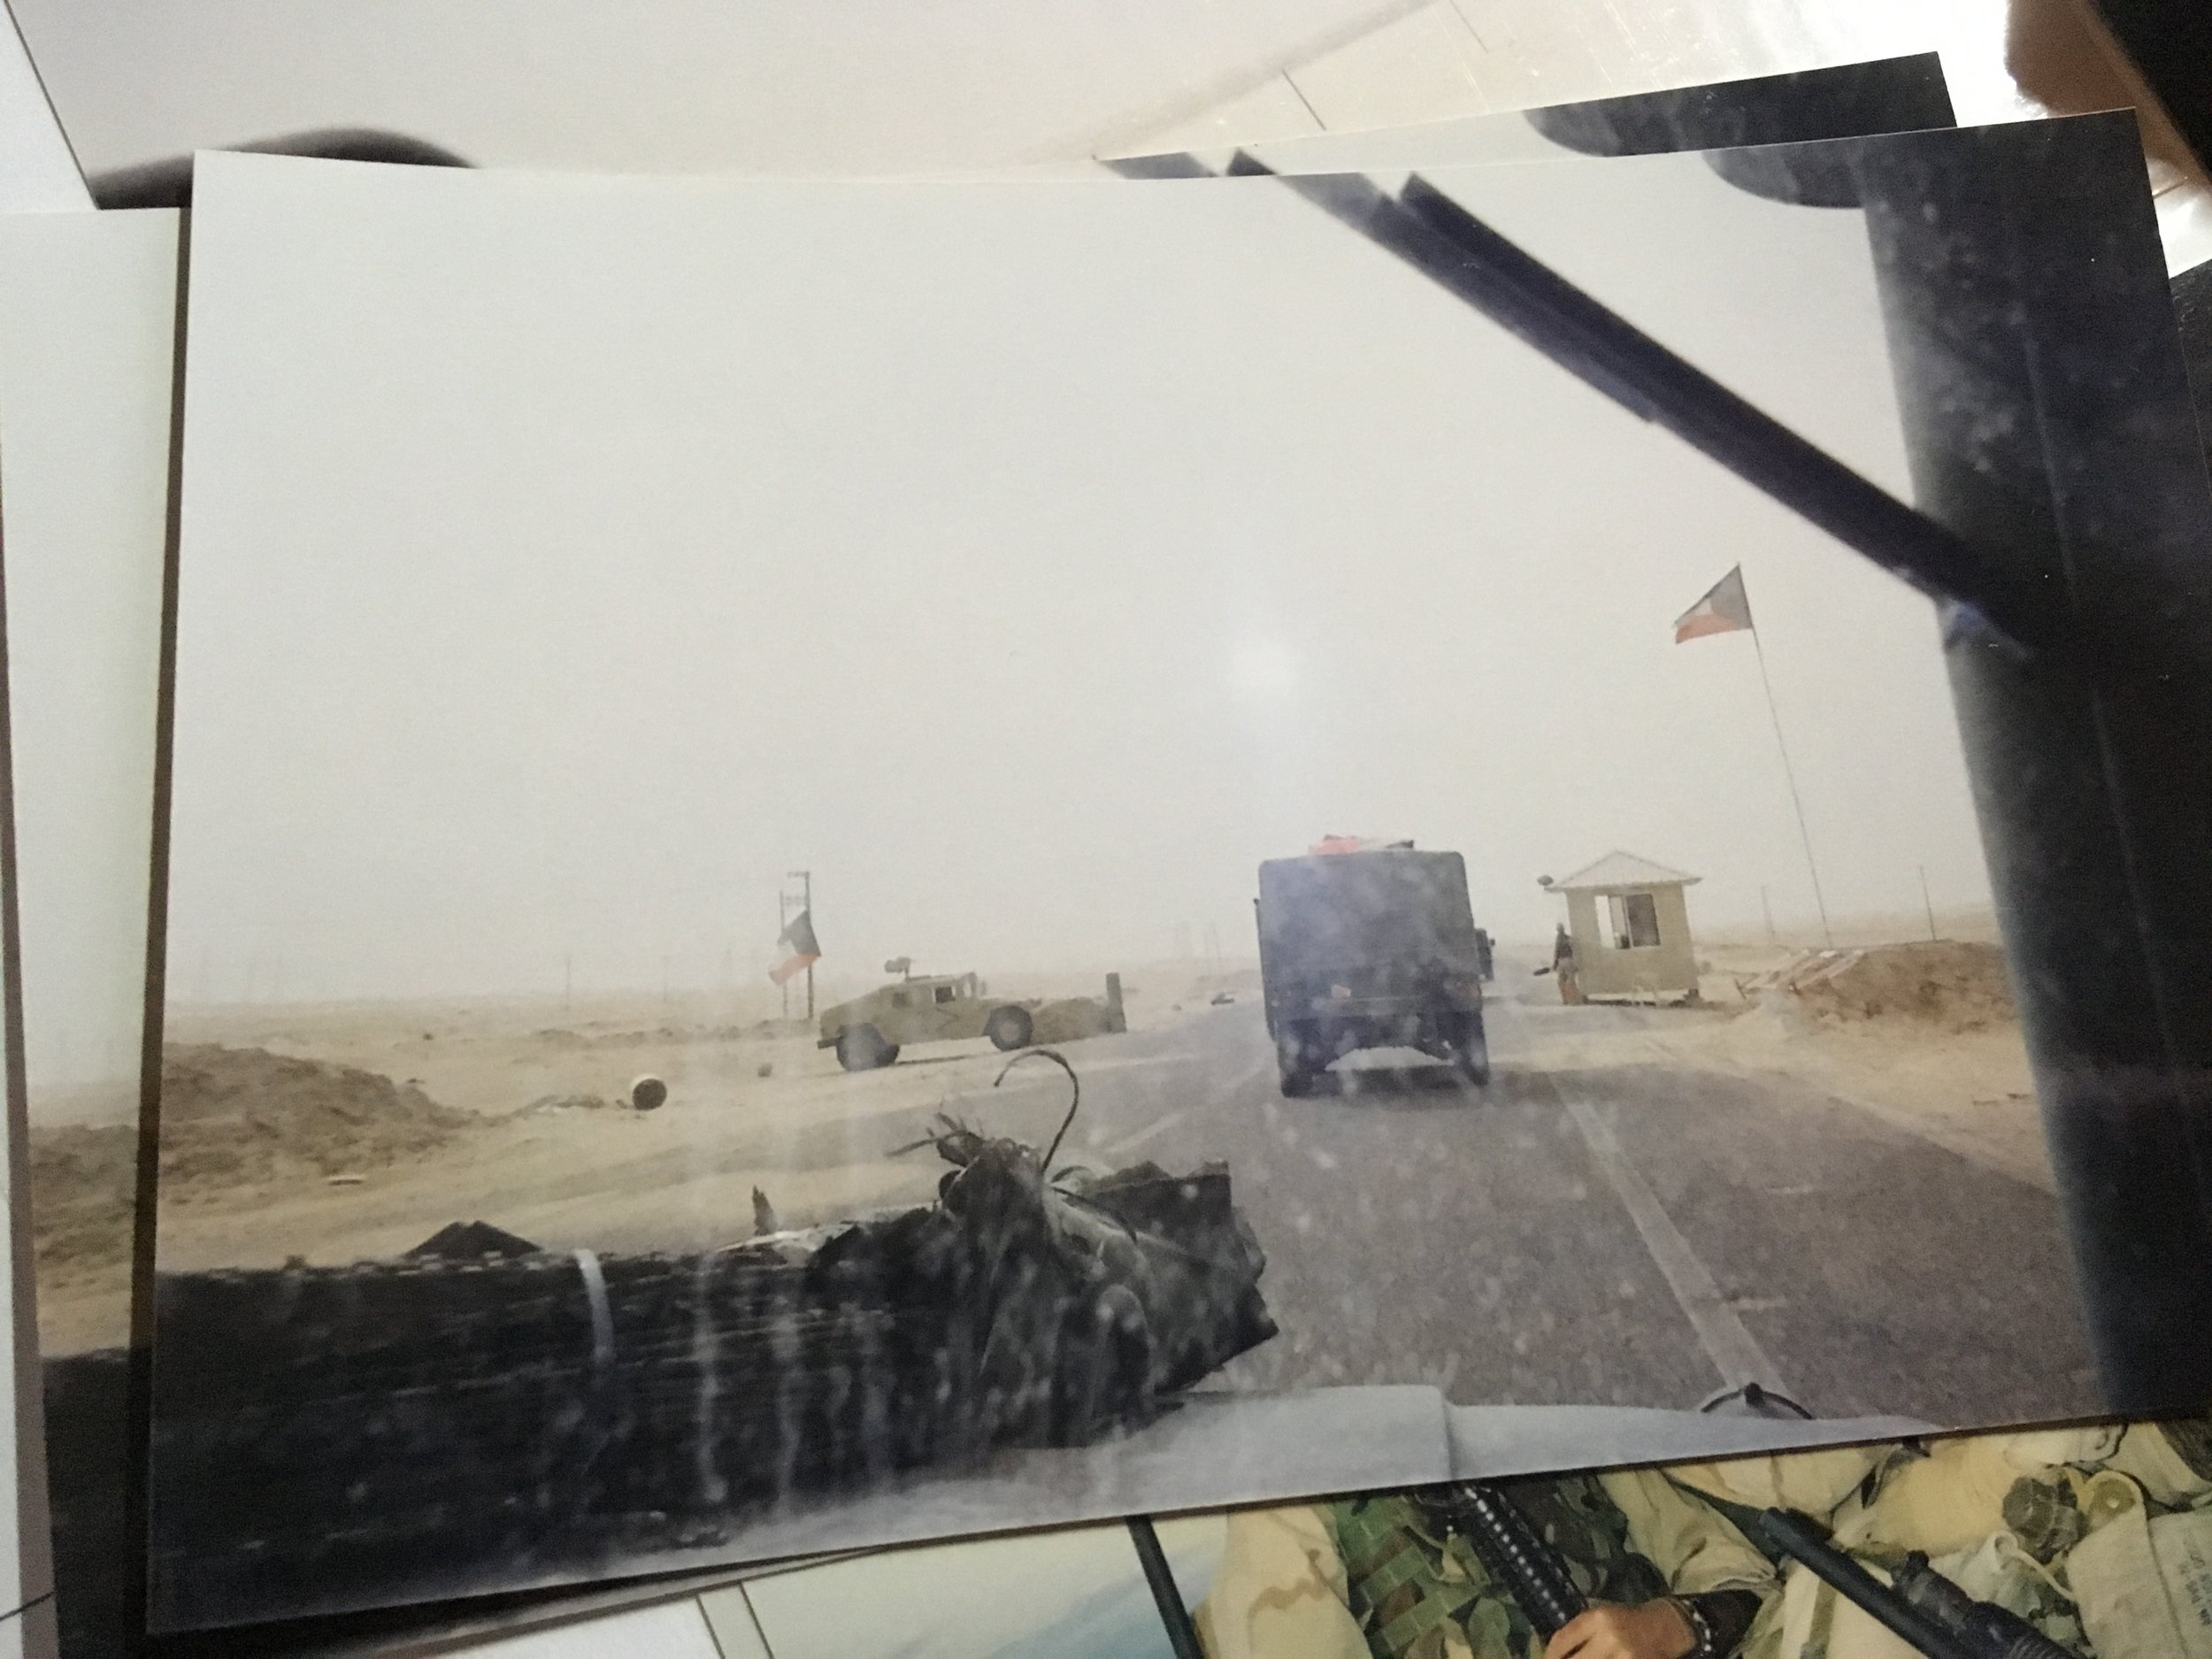 Crossing the Kuwaiti border on 20th March 2003 - the view from my vehicle